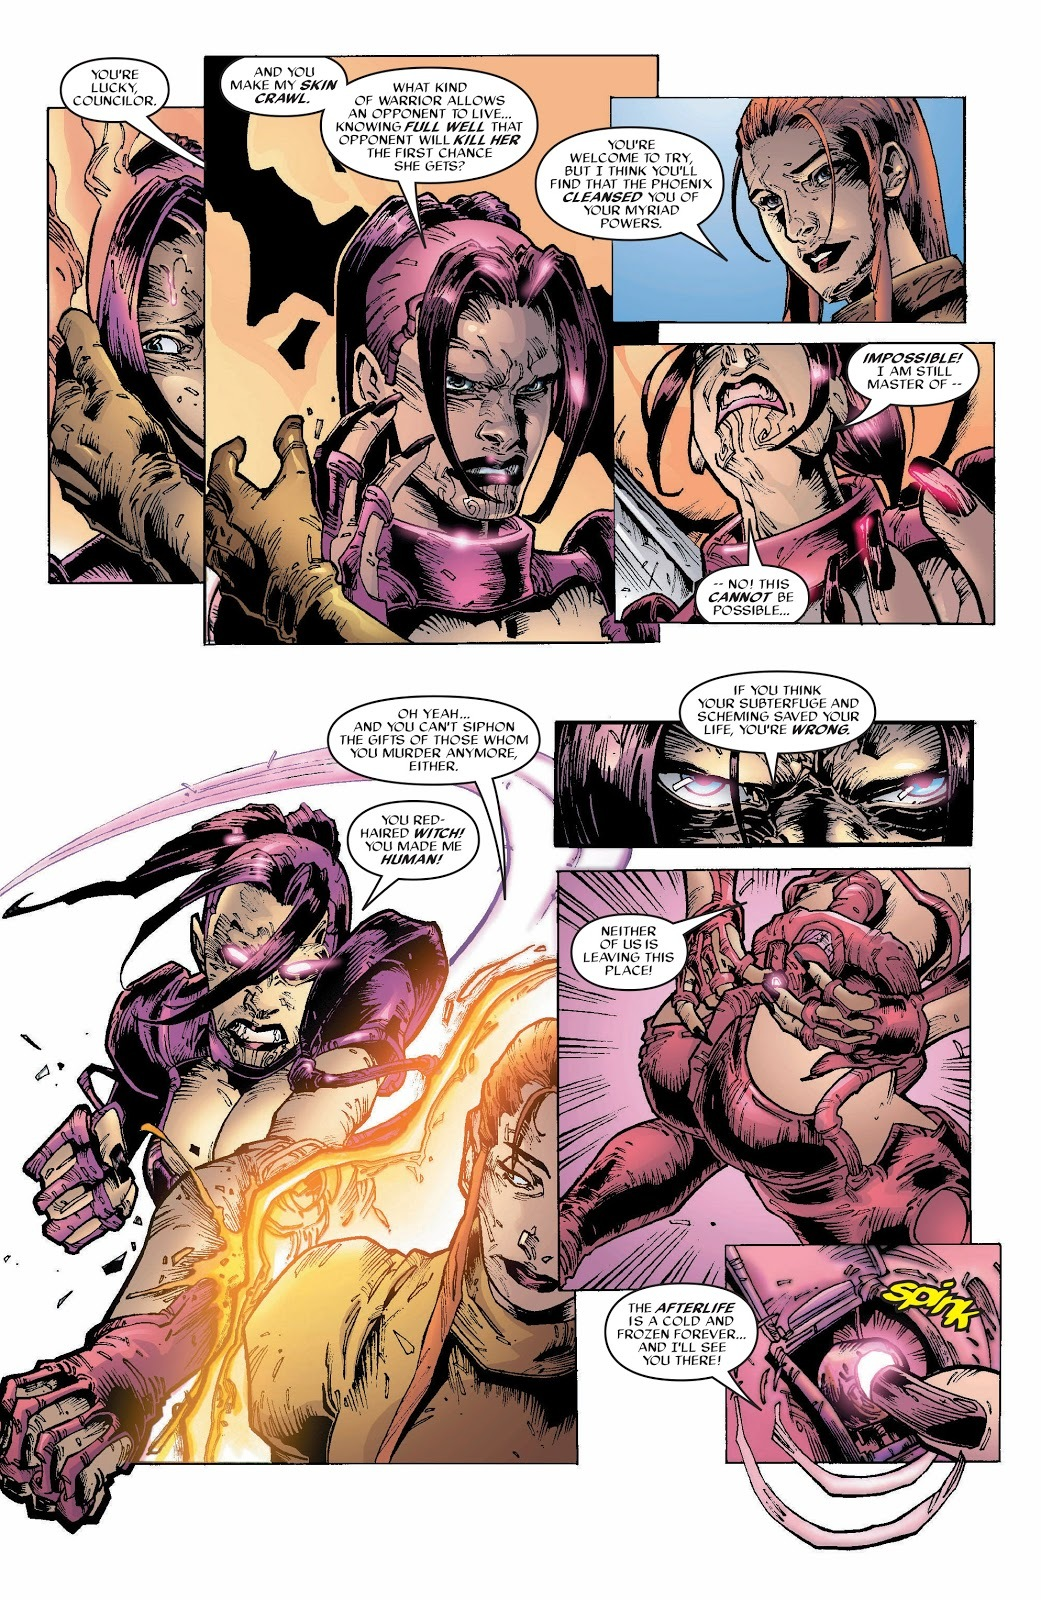 Rachel reveals that while she was releasing the Phoenix Force she used it's power to turn Nero human